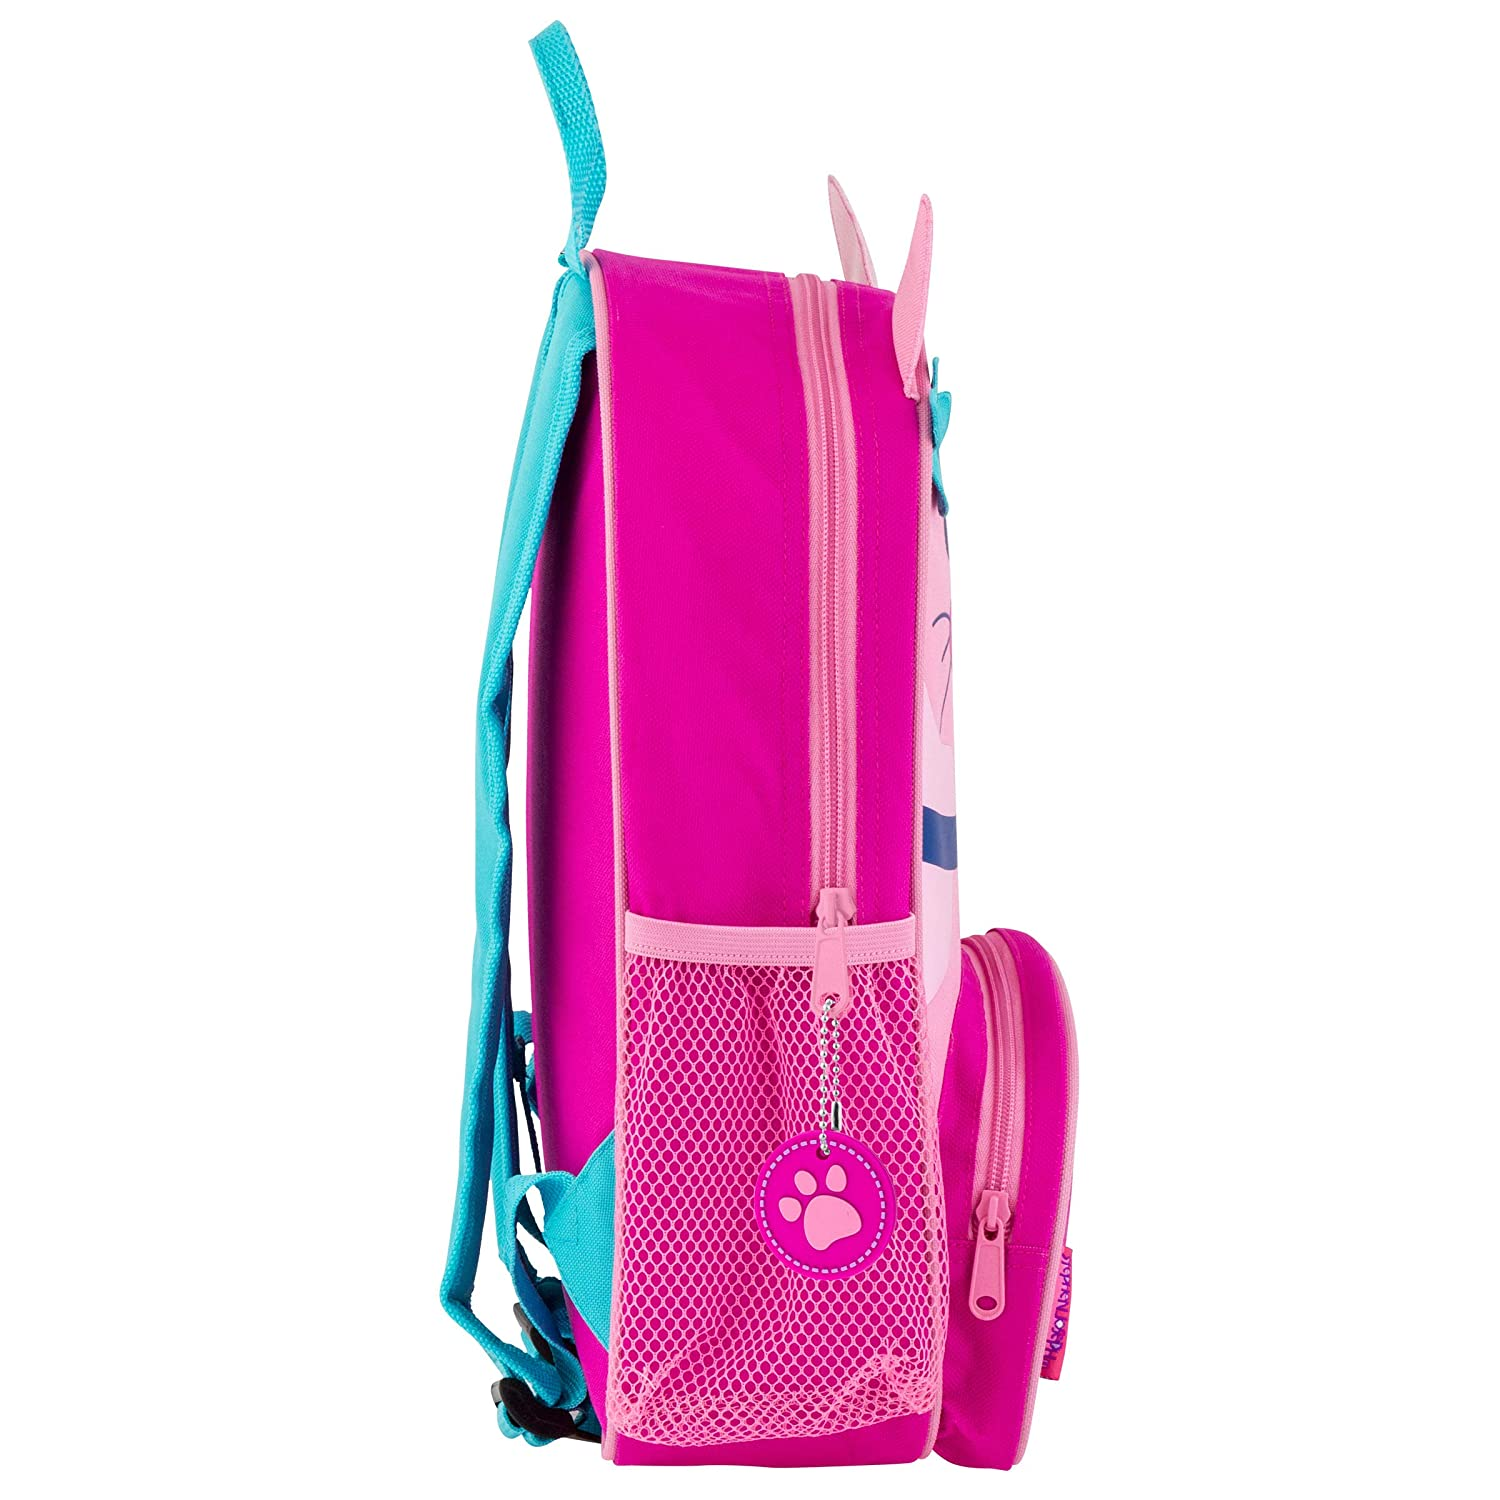 Stephen Joseph Quilted Backpacks Wholesale